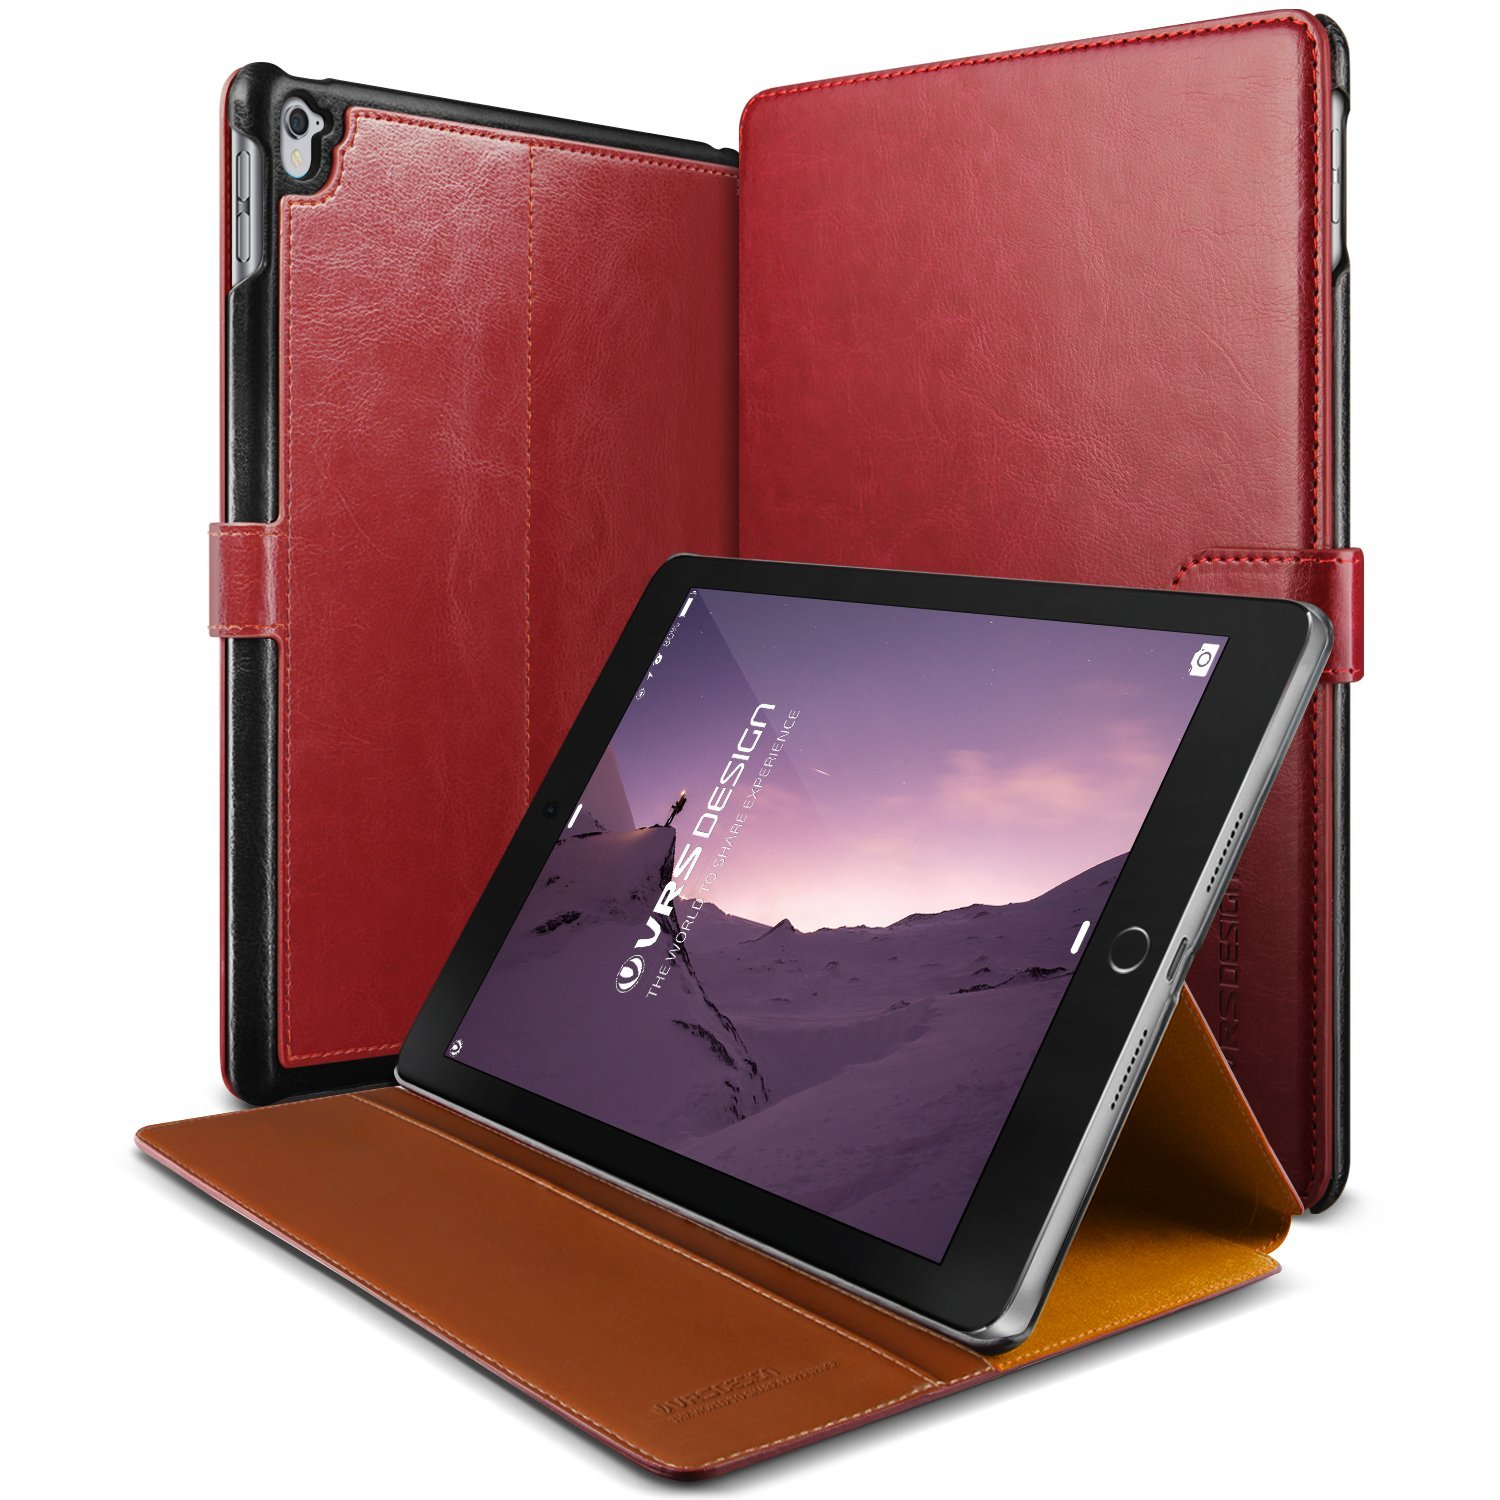 Top 10 Best Apple iPad Pro 9.7 Cases And Covers